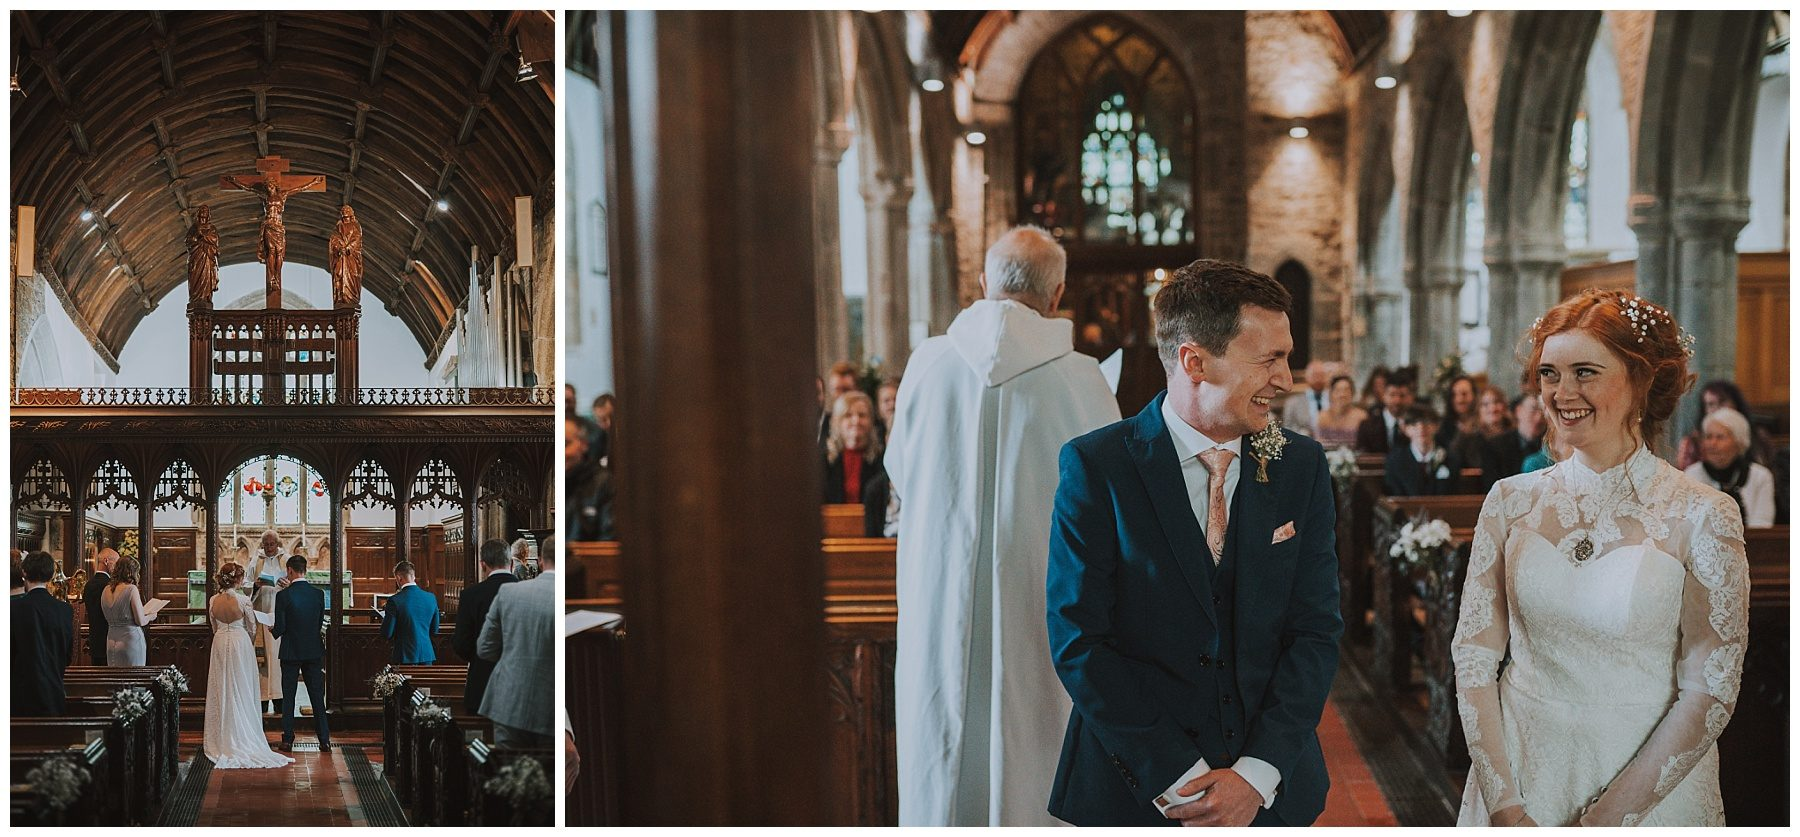 Bride and groom in cornwall church